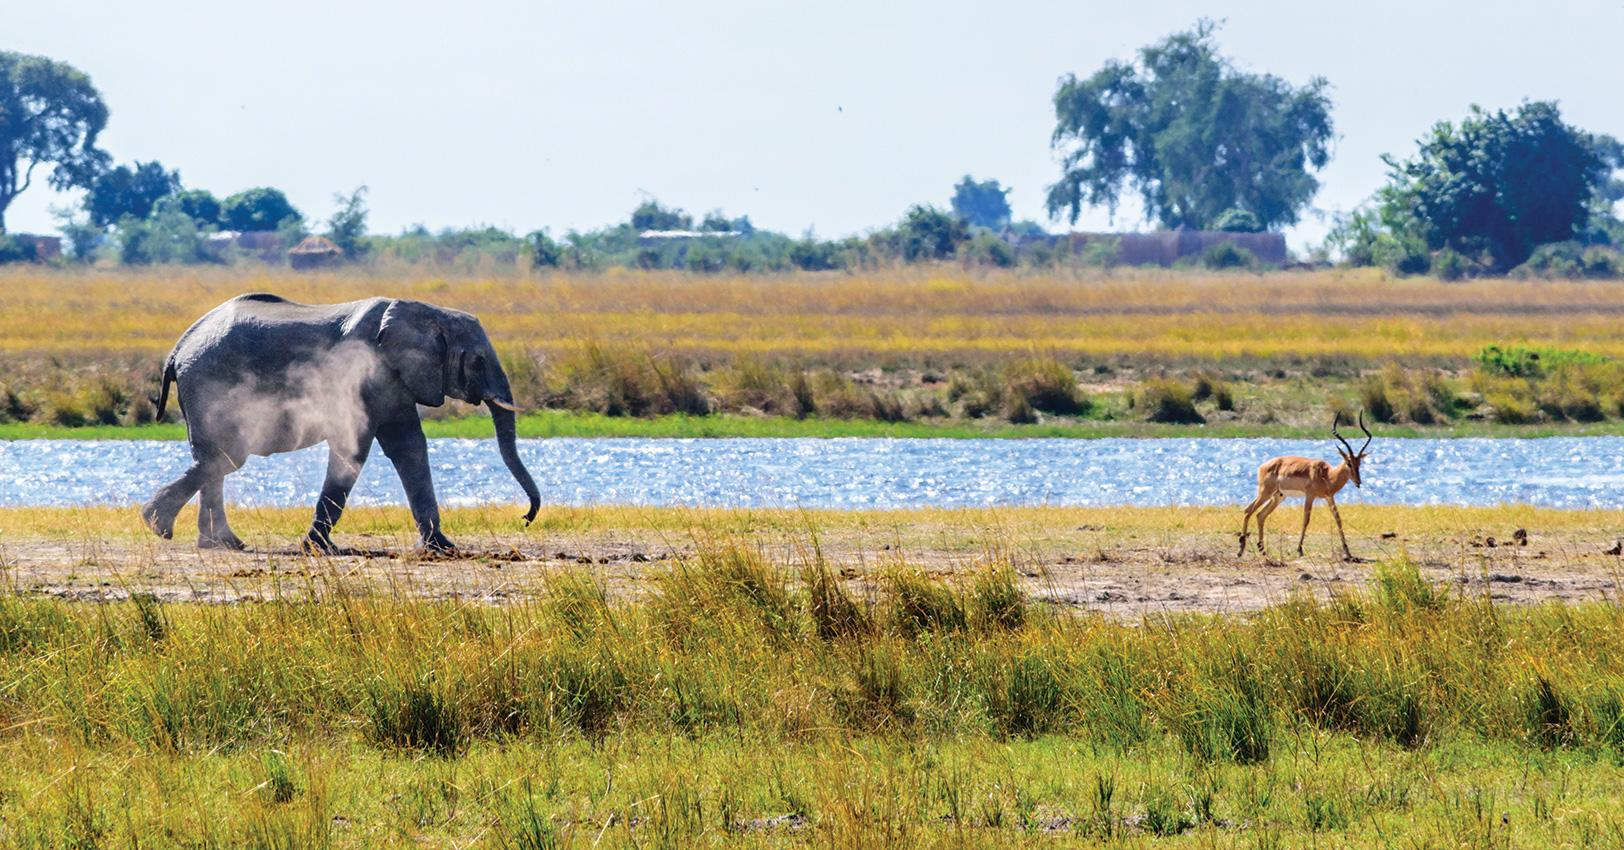 GM-Travel-SustainableTourismCountries-Botswana-1525374222285.jpg